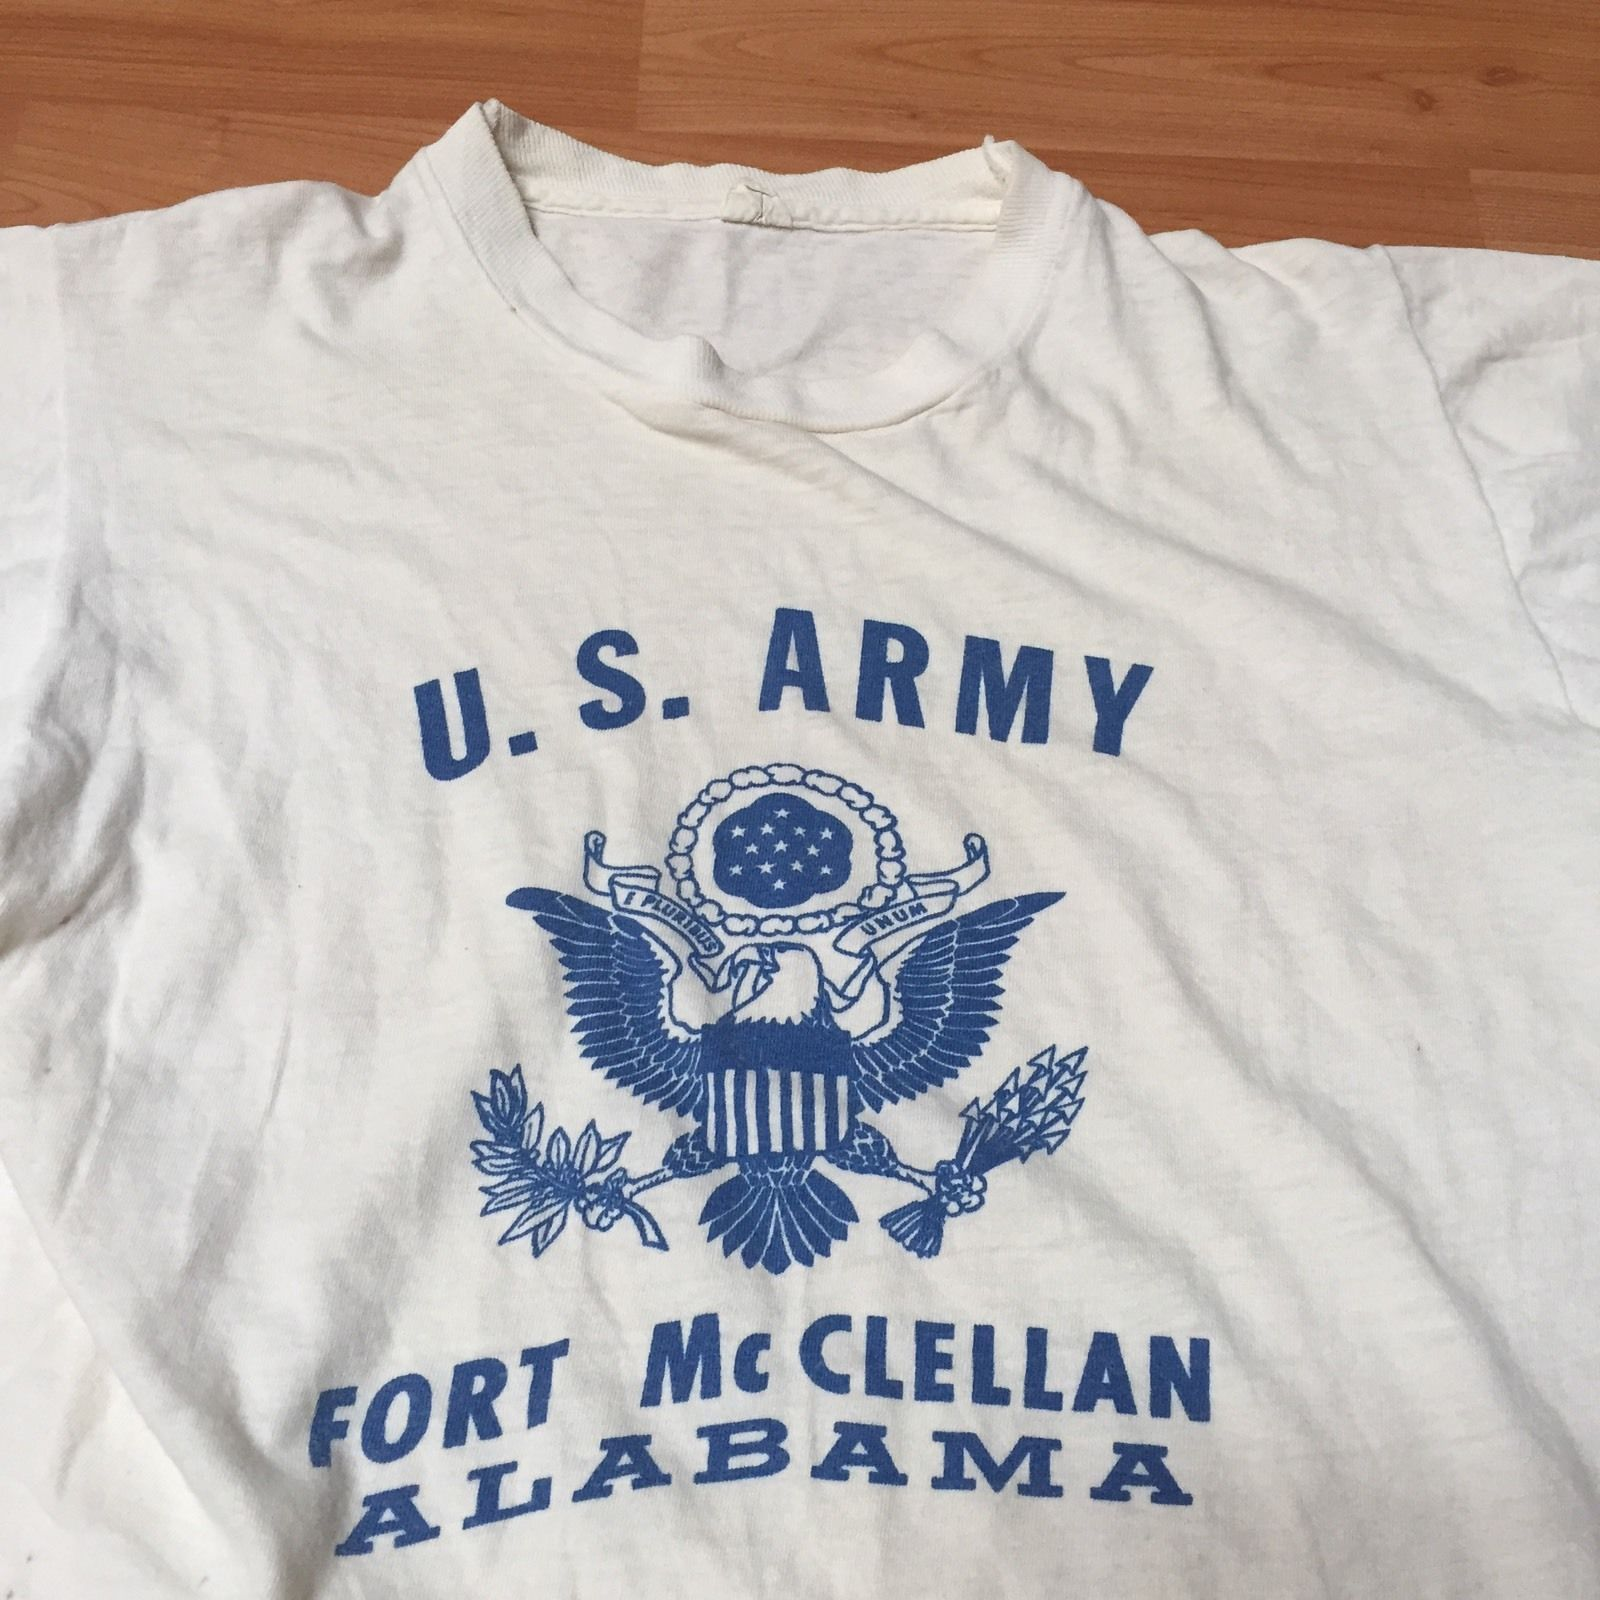 T shirt white ebay - Vintage 1960 S Fort Mcclellan U S Army Military Cotton Tee Shirt Nr Ebay